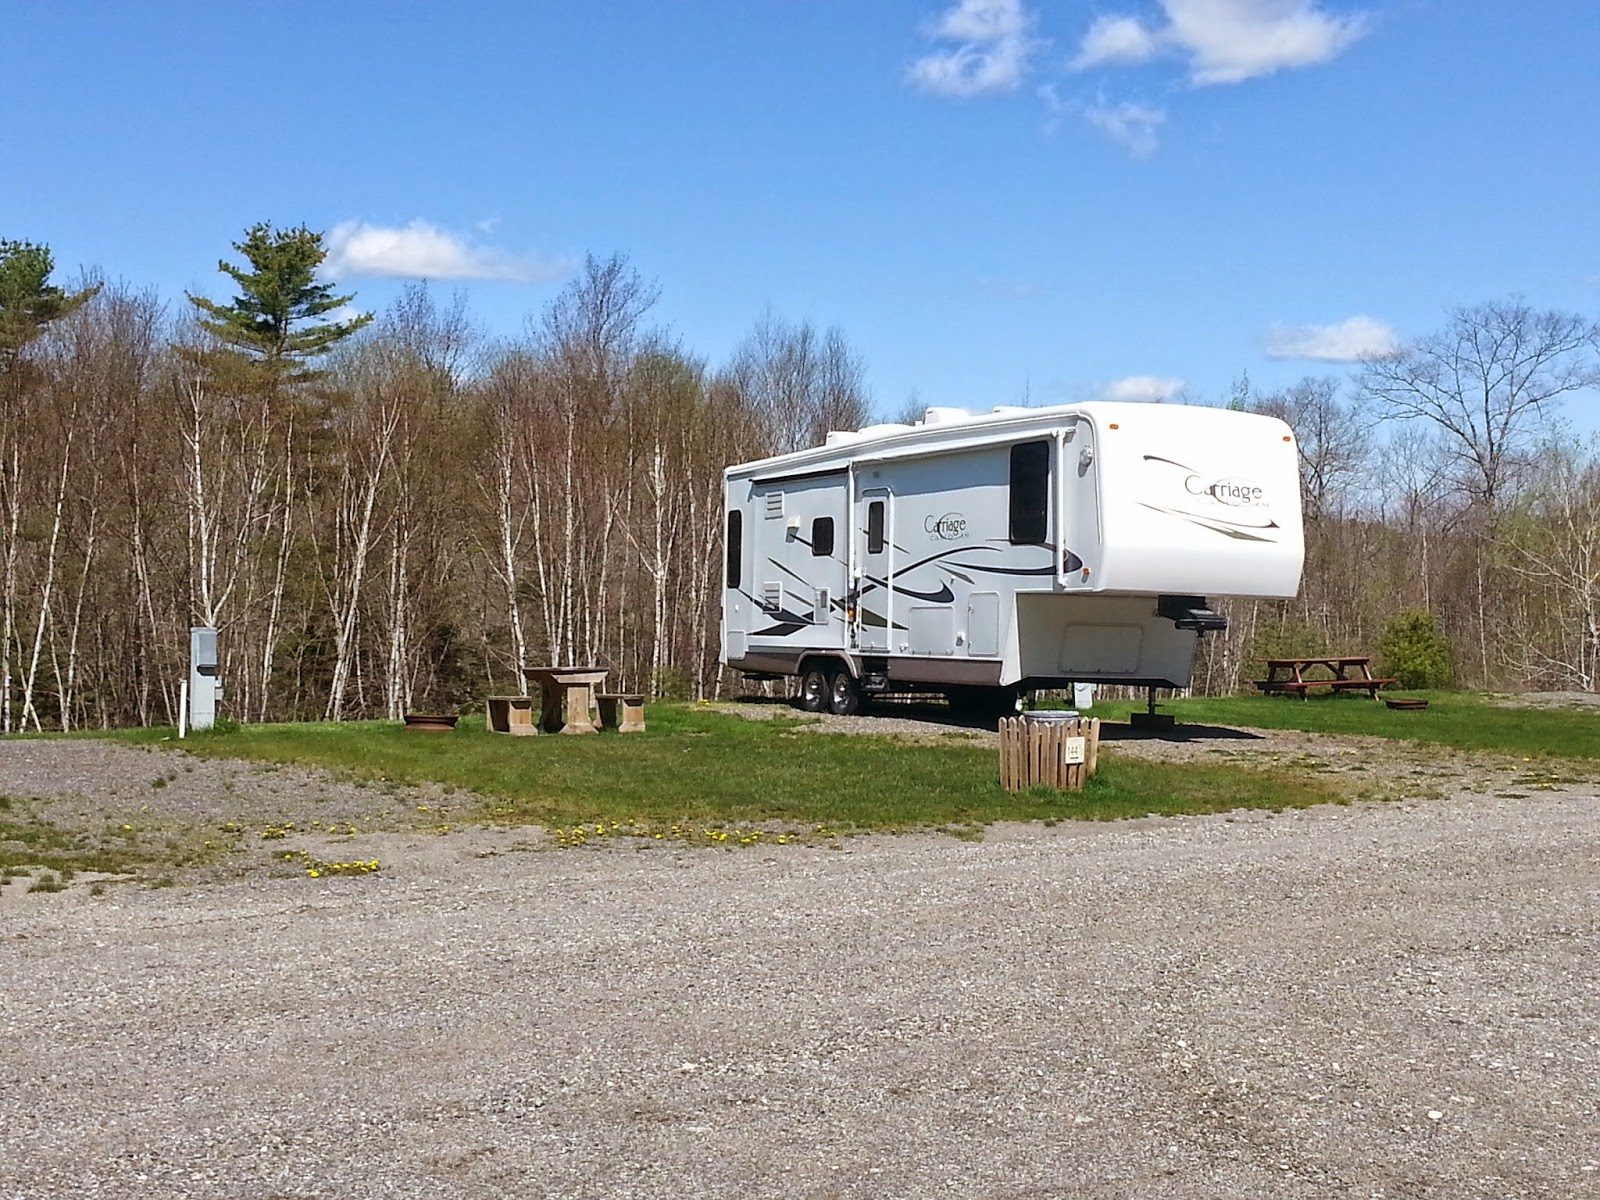 RV-A-GOGO: RV Park Review – Shore Hills Campground and RV